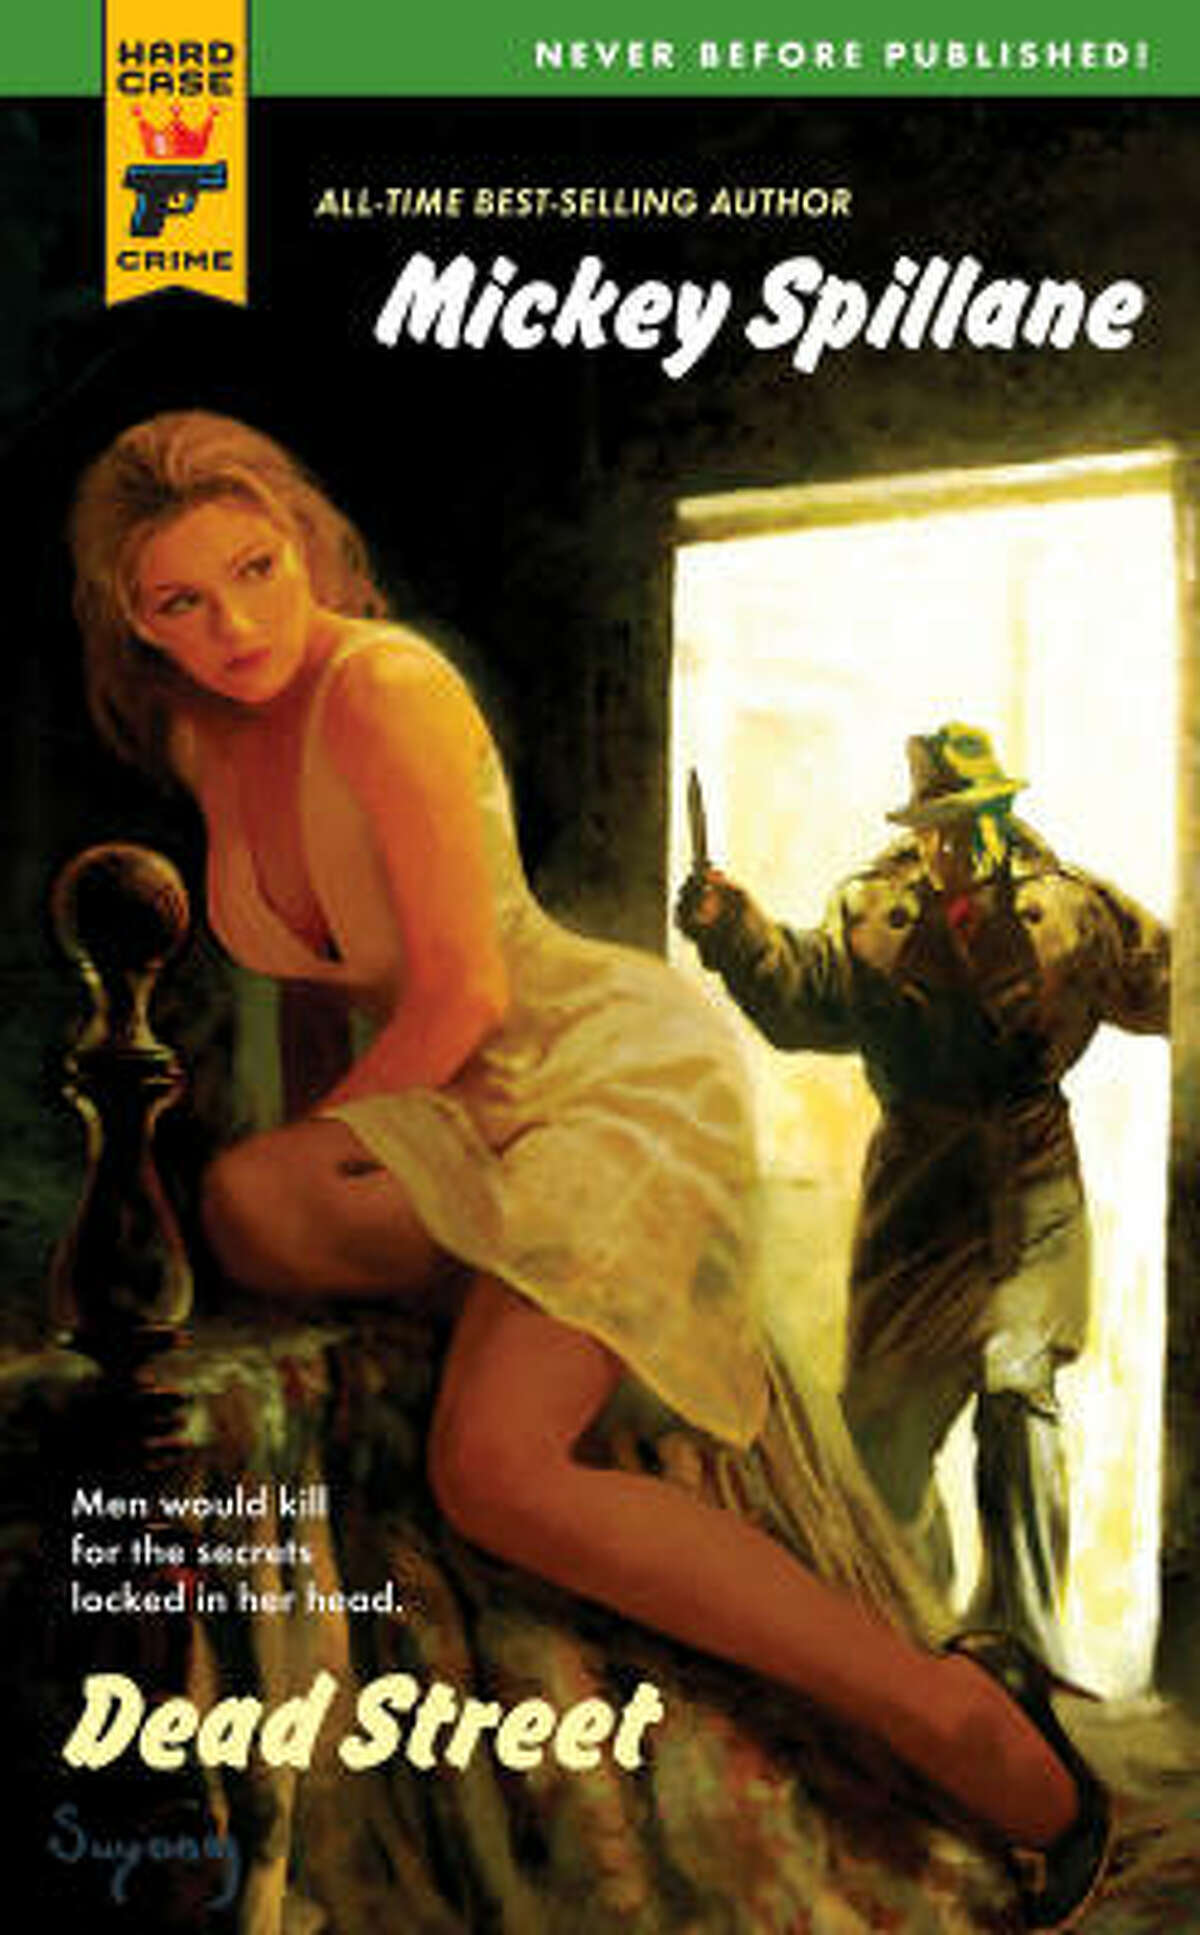 Dead Street: The first (but not to be the last) Mickey Spillane novel published since his death in 2006, this was finished by his friend, Road to Perdition author Max Allan Collins. Collins is also working on a handful of unfinished Mike Hammer novels.